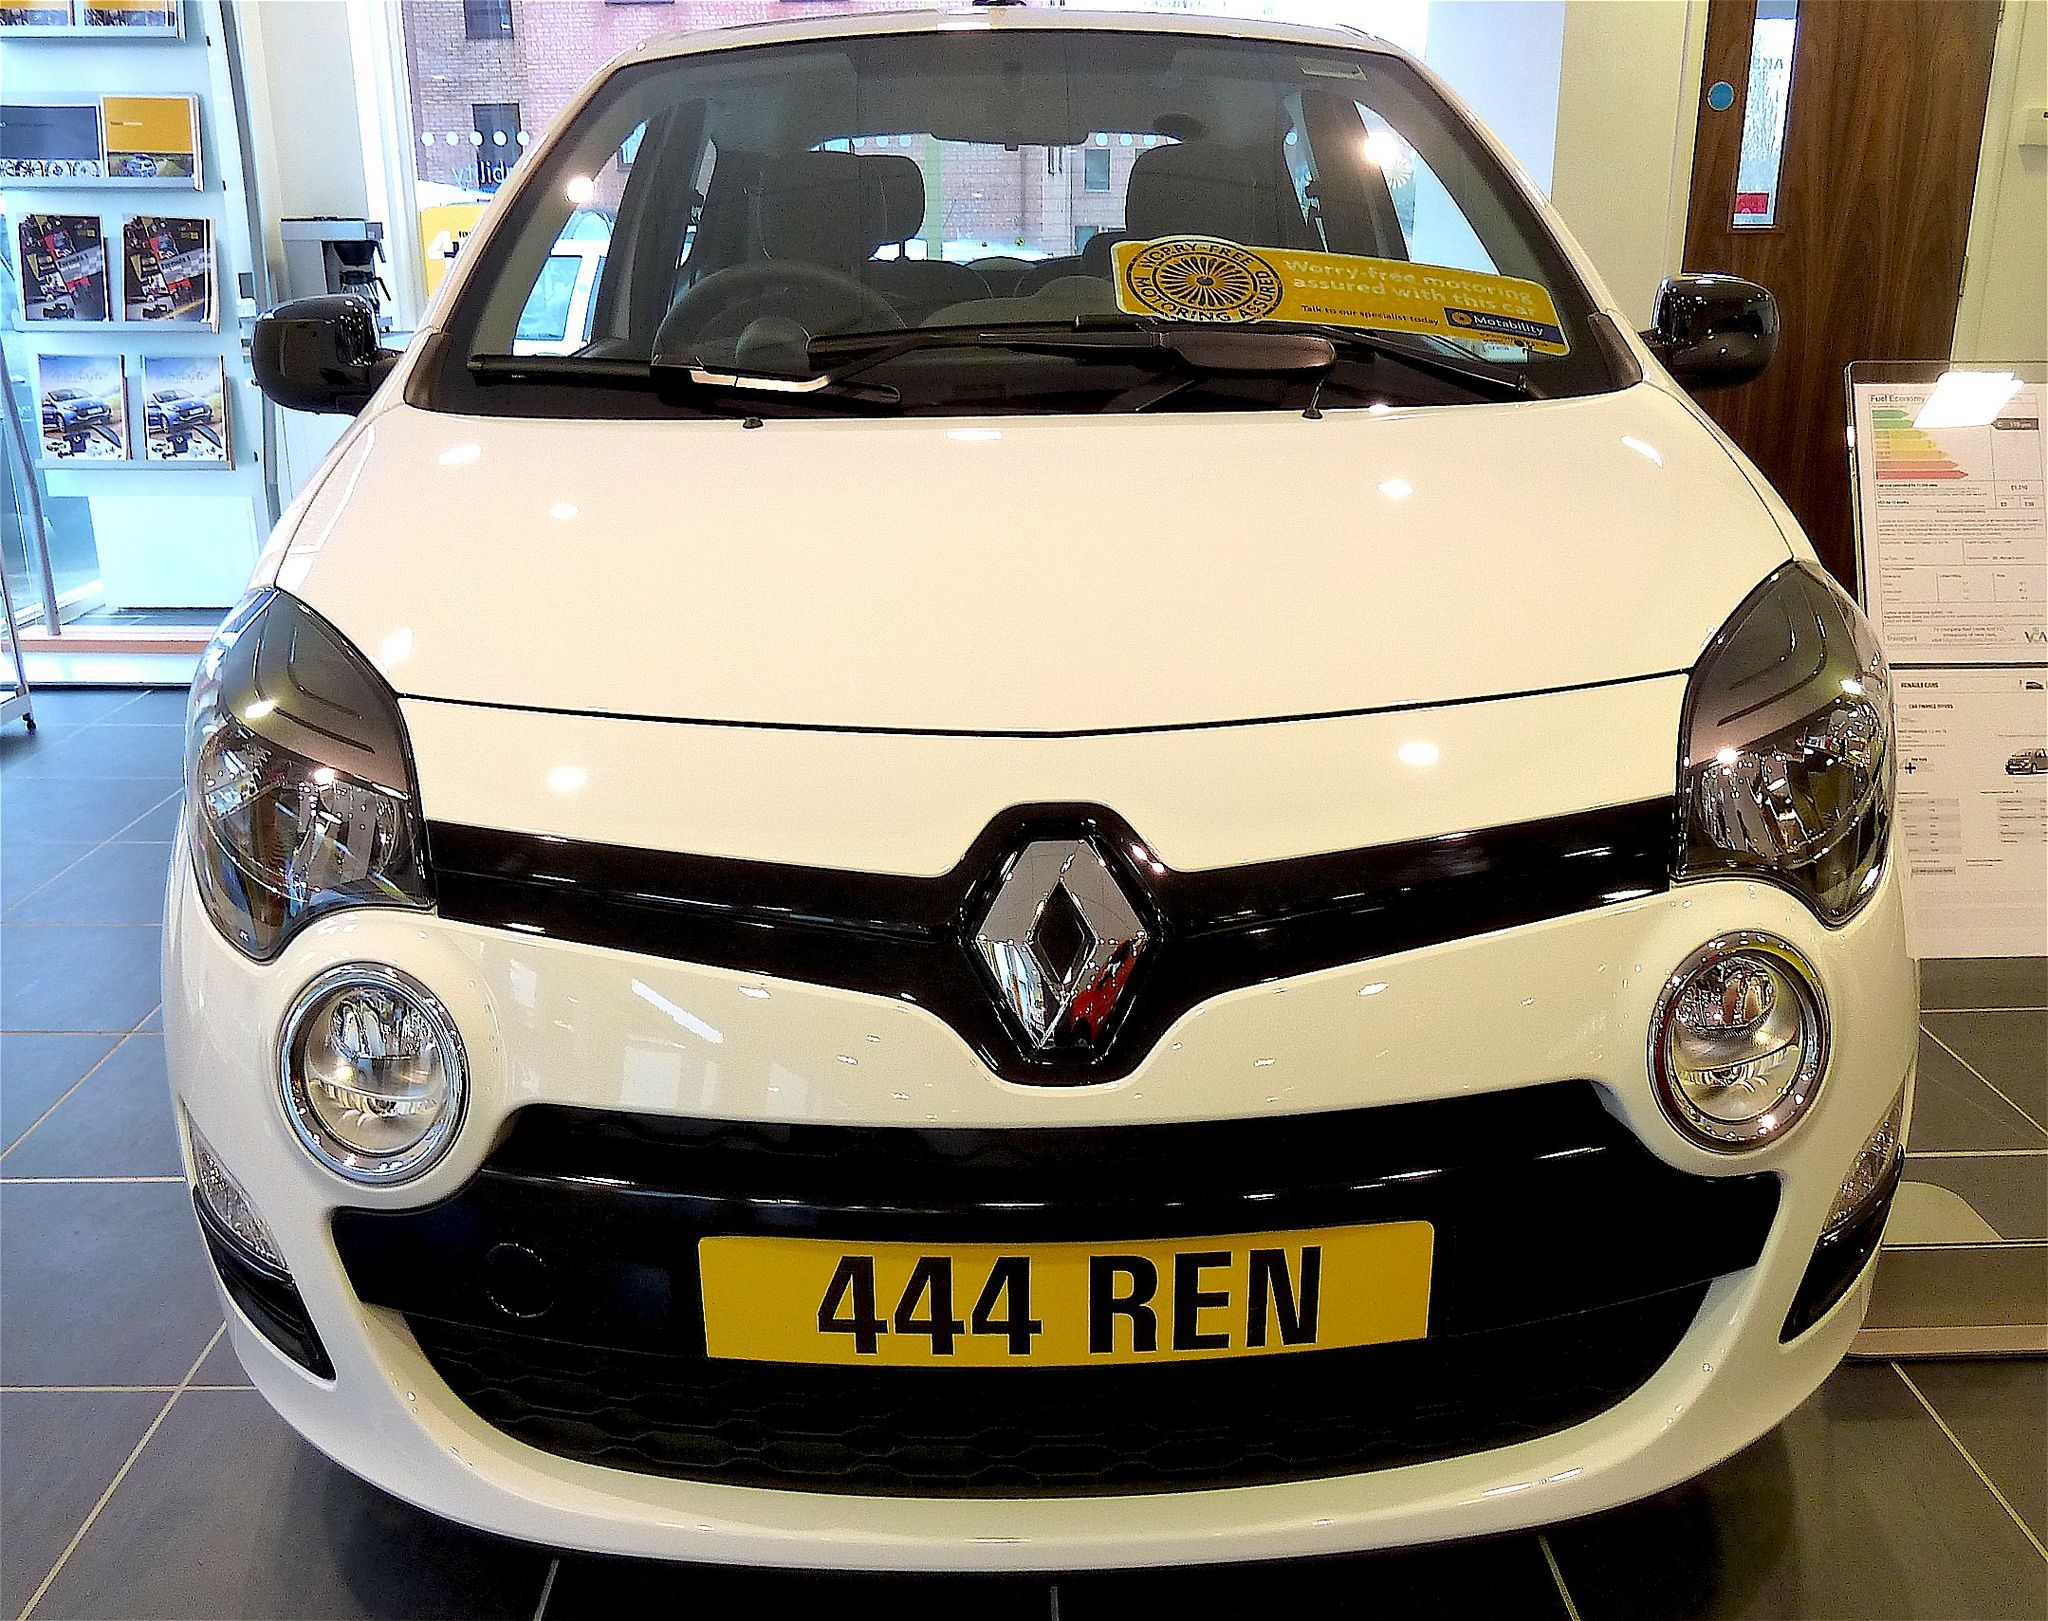 2012 Renault Twingo A New Renault Twingo Seen In The Yeovil